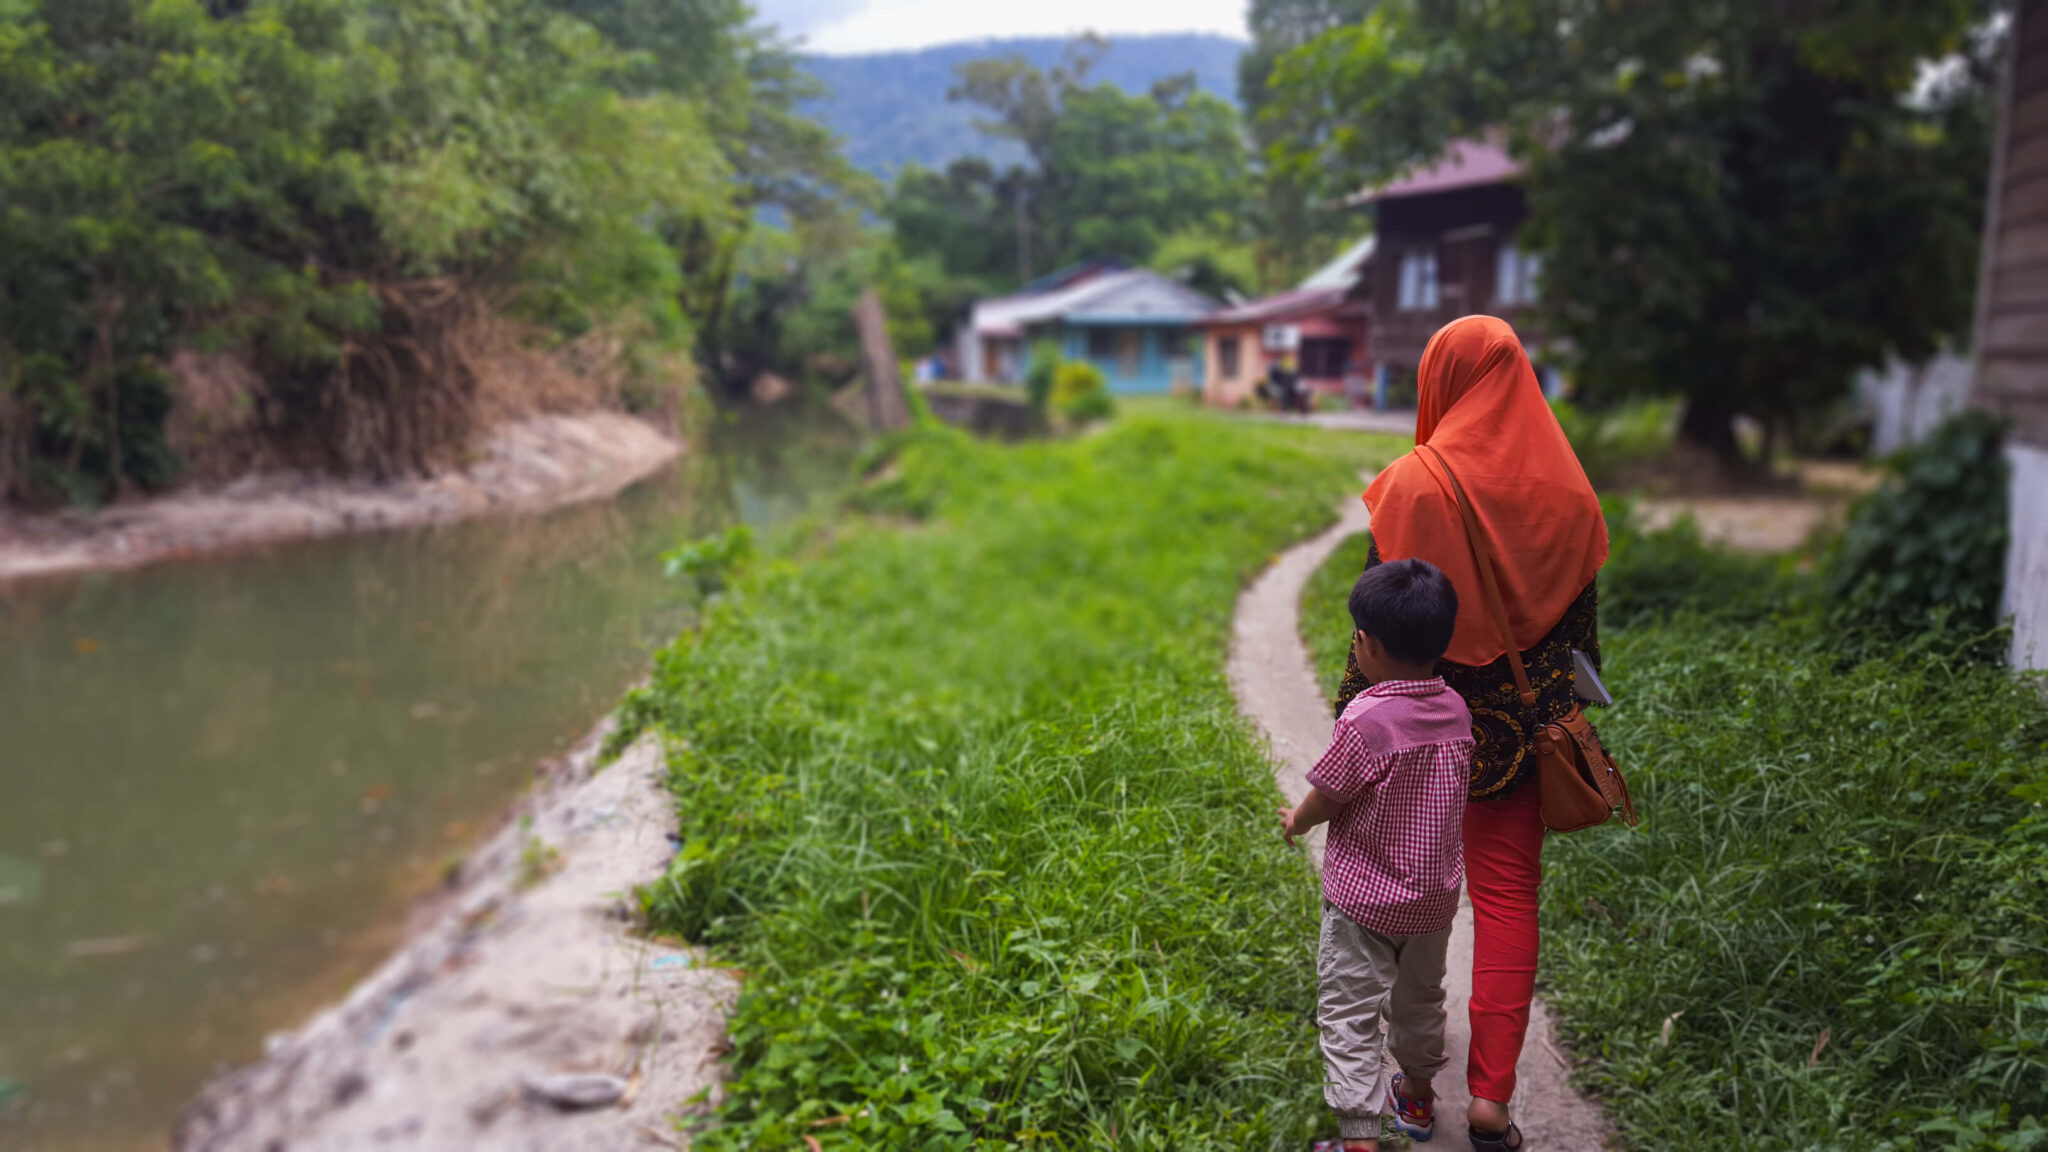 A woman and child walking to a village along a dirt path.